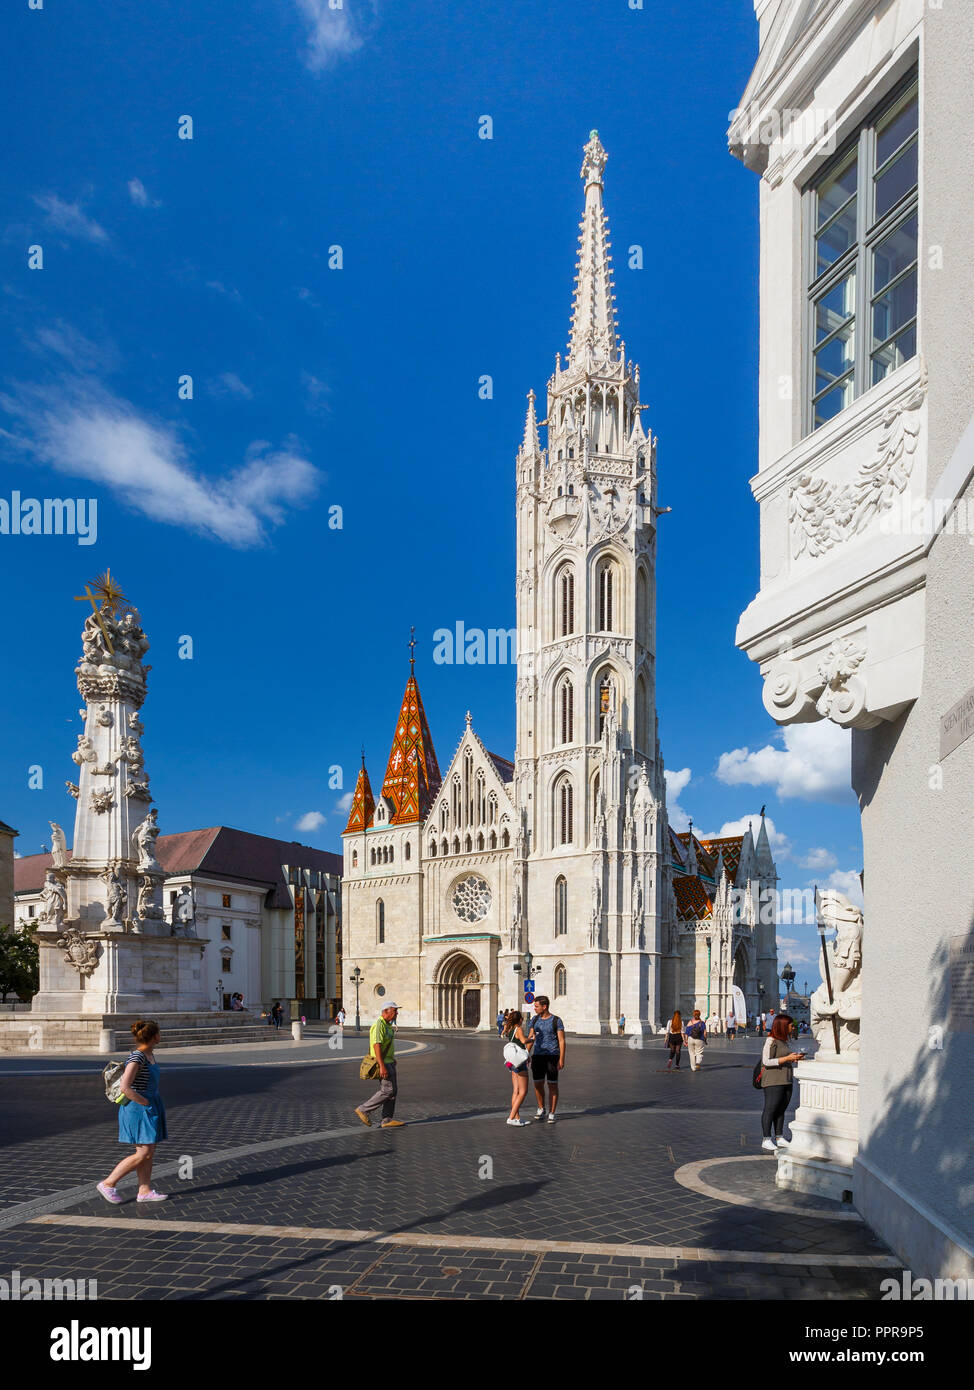 Budapest, Hungary - August 16, 2018: View of Trinity column and Matthias church in historic city centre of Budapest, Hungary. - Stock Image